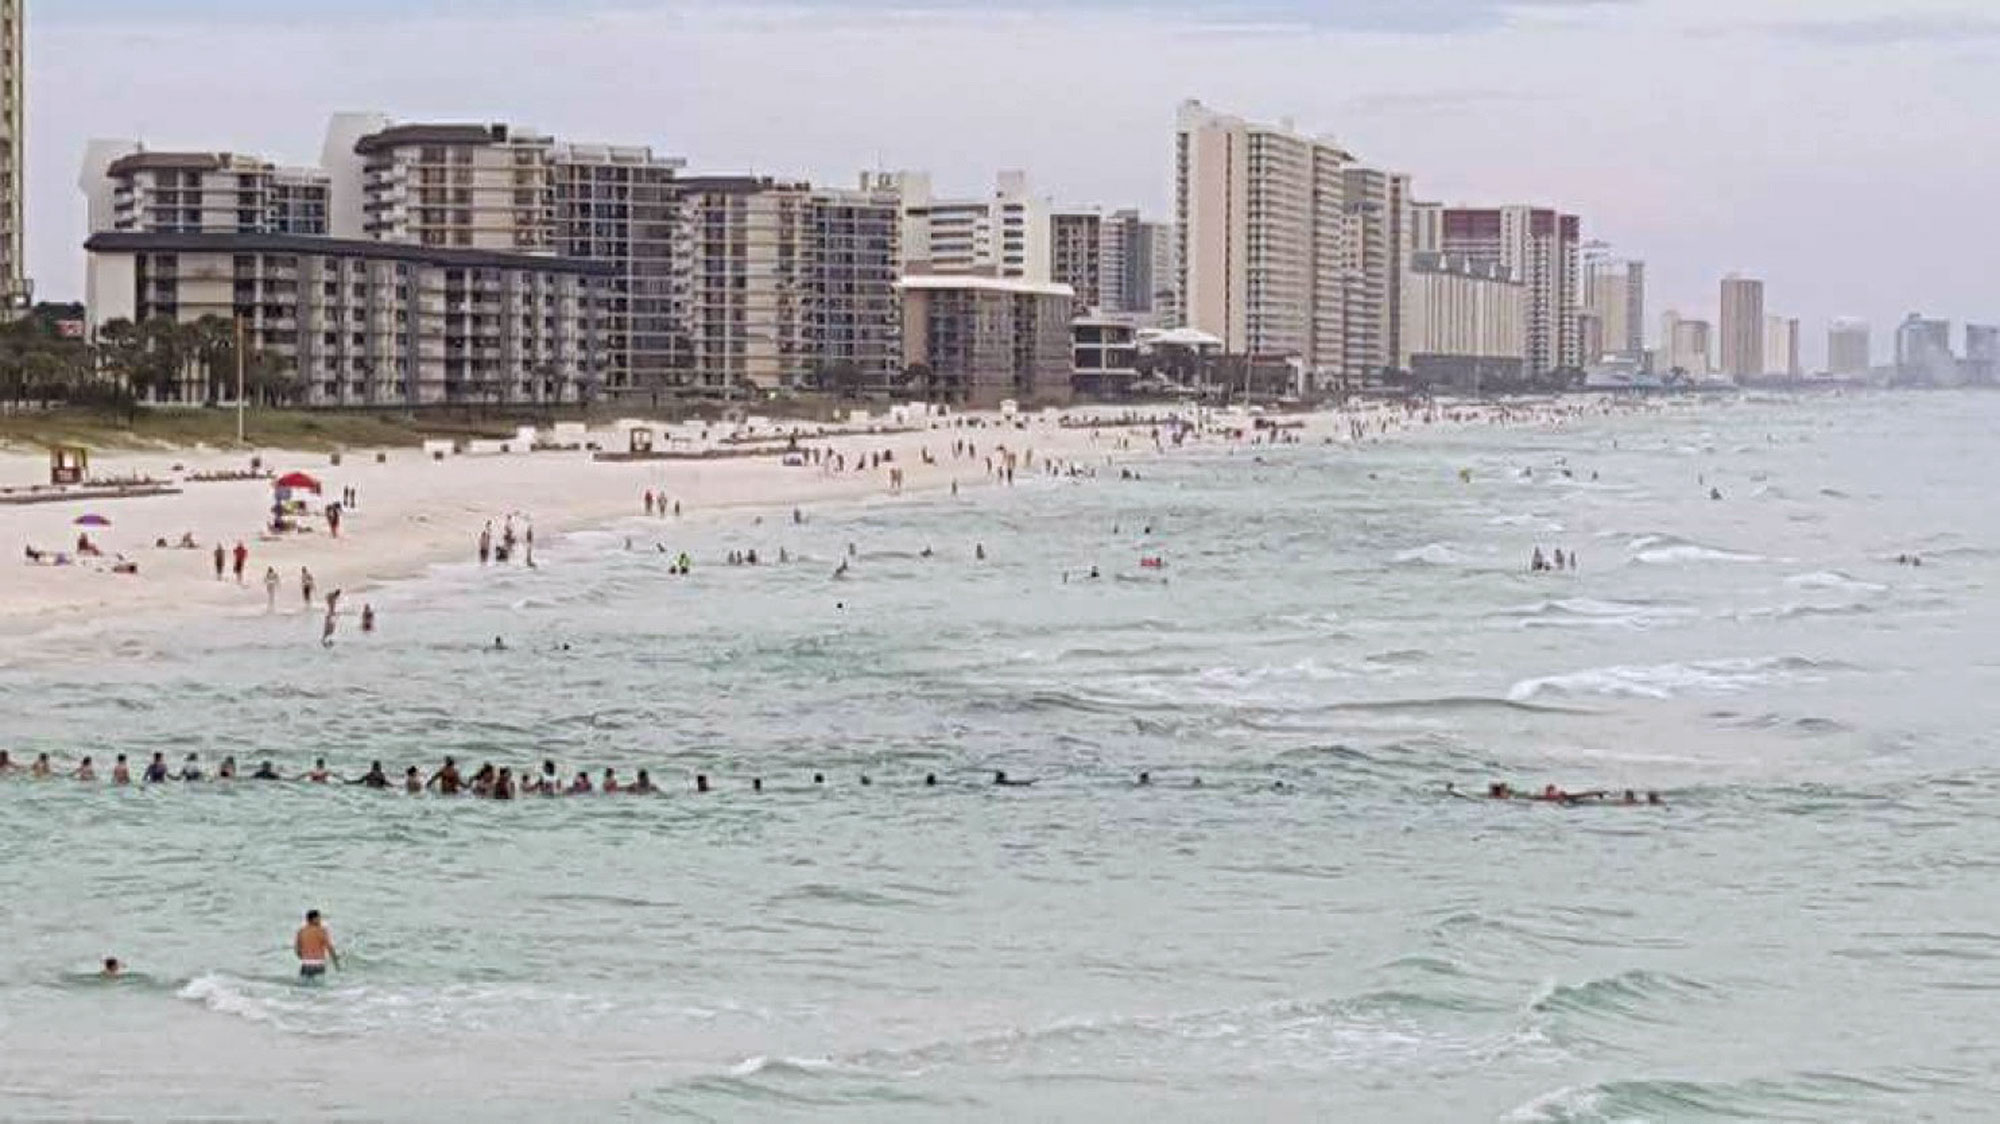 Family of Six Saved From Drowning by Beachgoers Who Formed a Human Chain